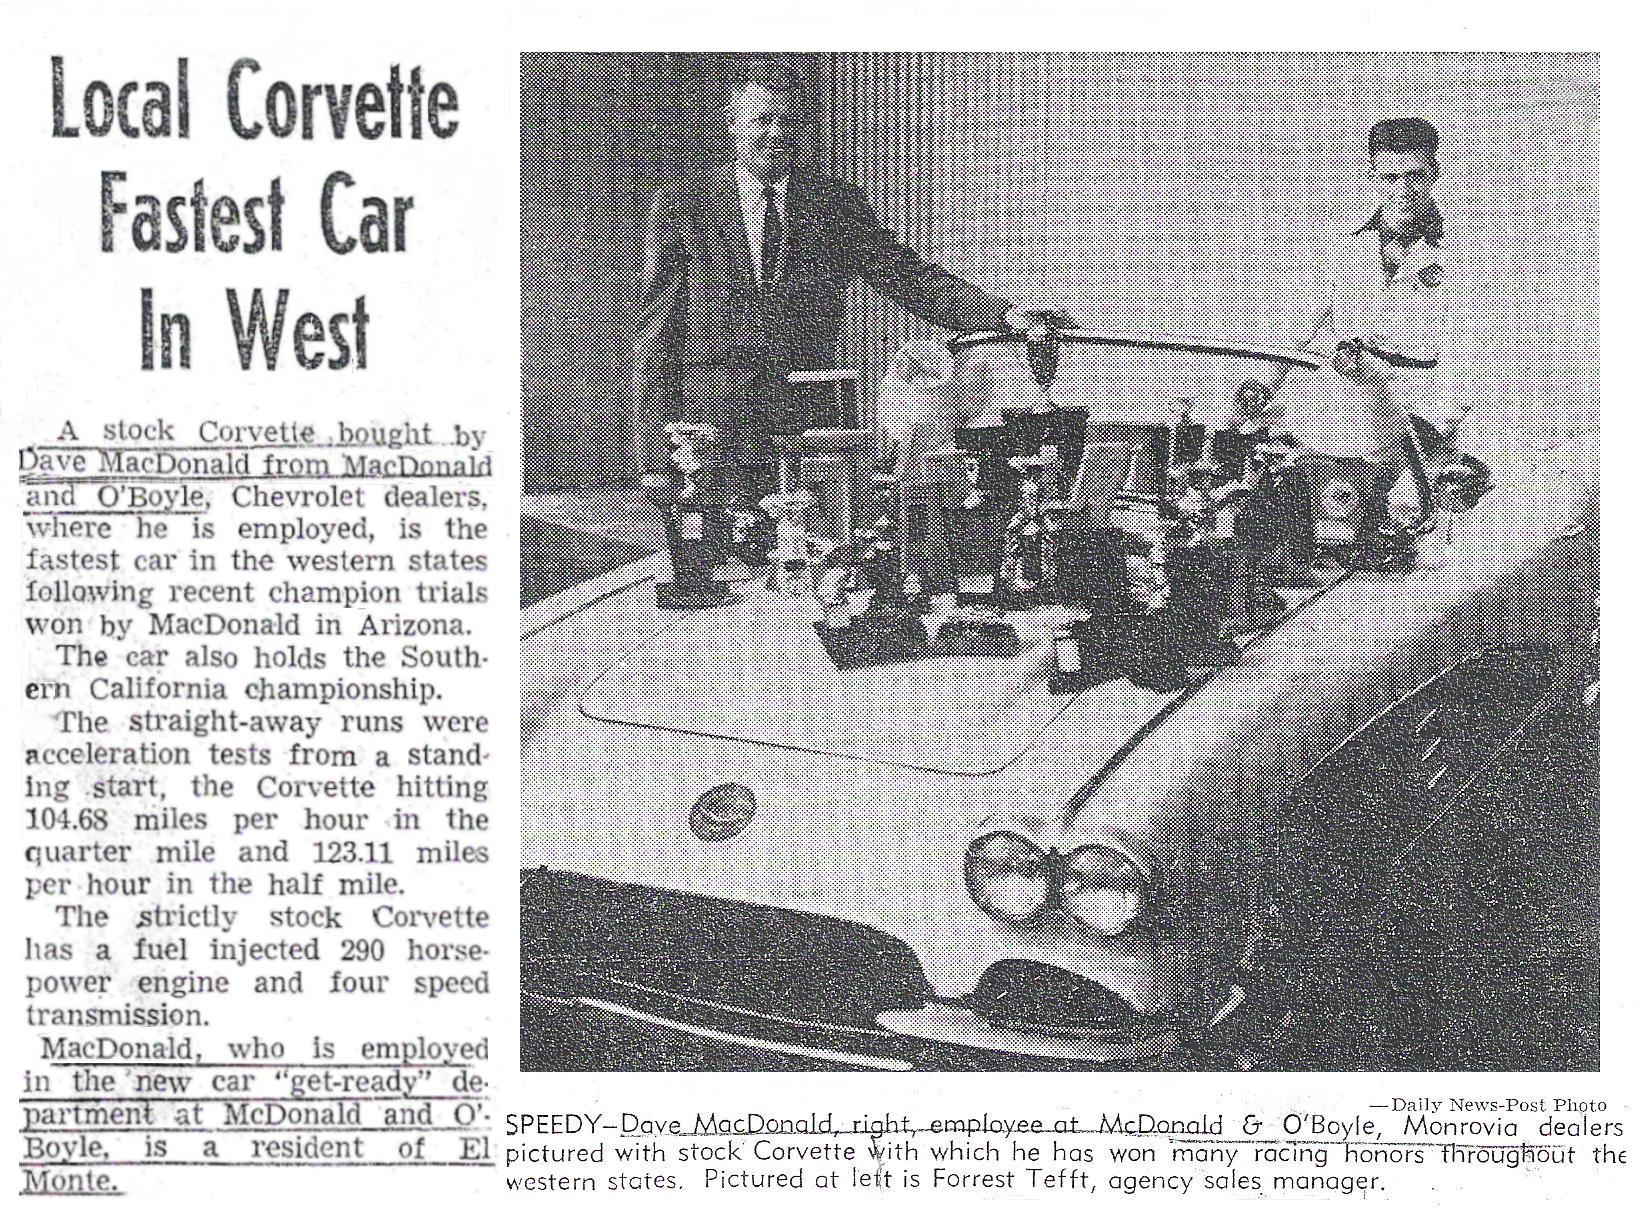 Dave MacDonald - Fastest Corvette in the West